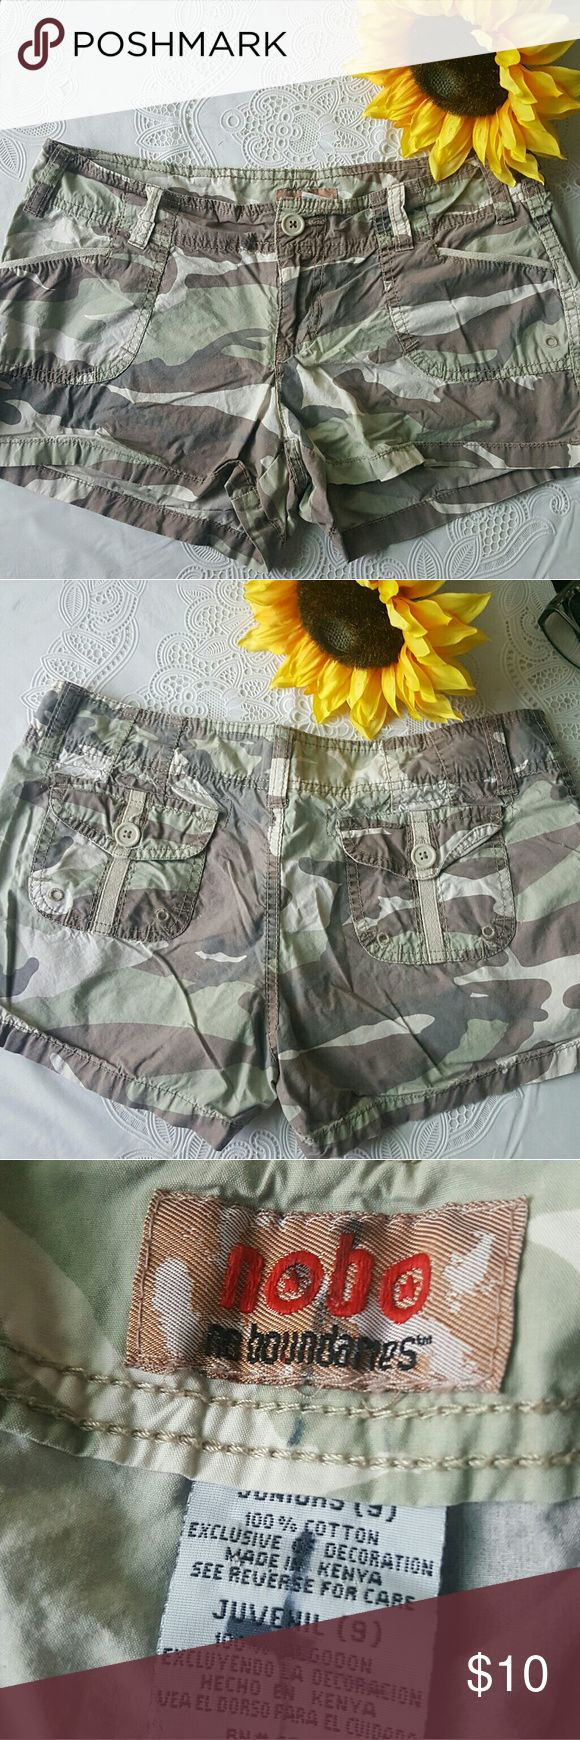 "Camouflage shorts No Boundaries camouflage shorts. Super soft and  comfy, 10"" from waist to hem. Excellent condition. No Boundaries Shorts"